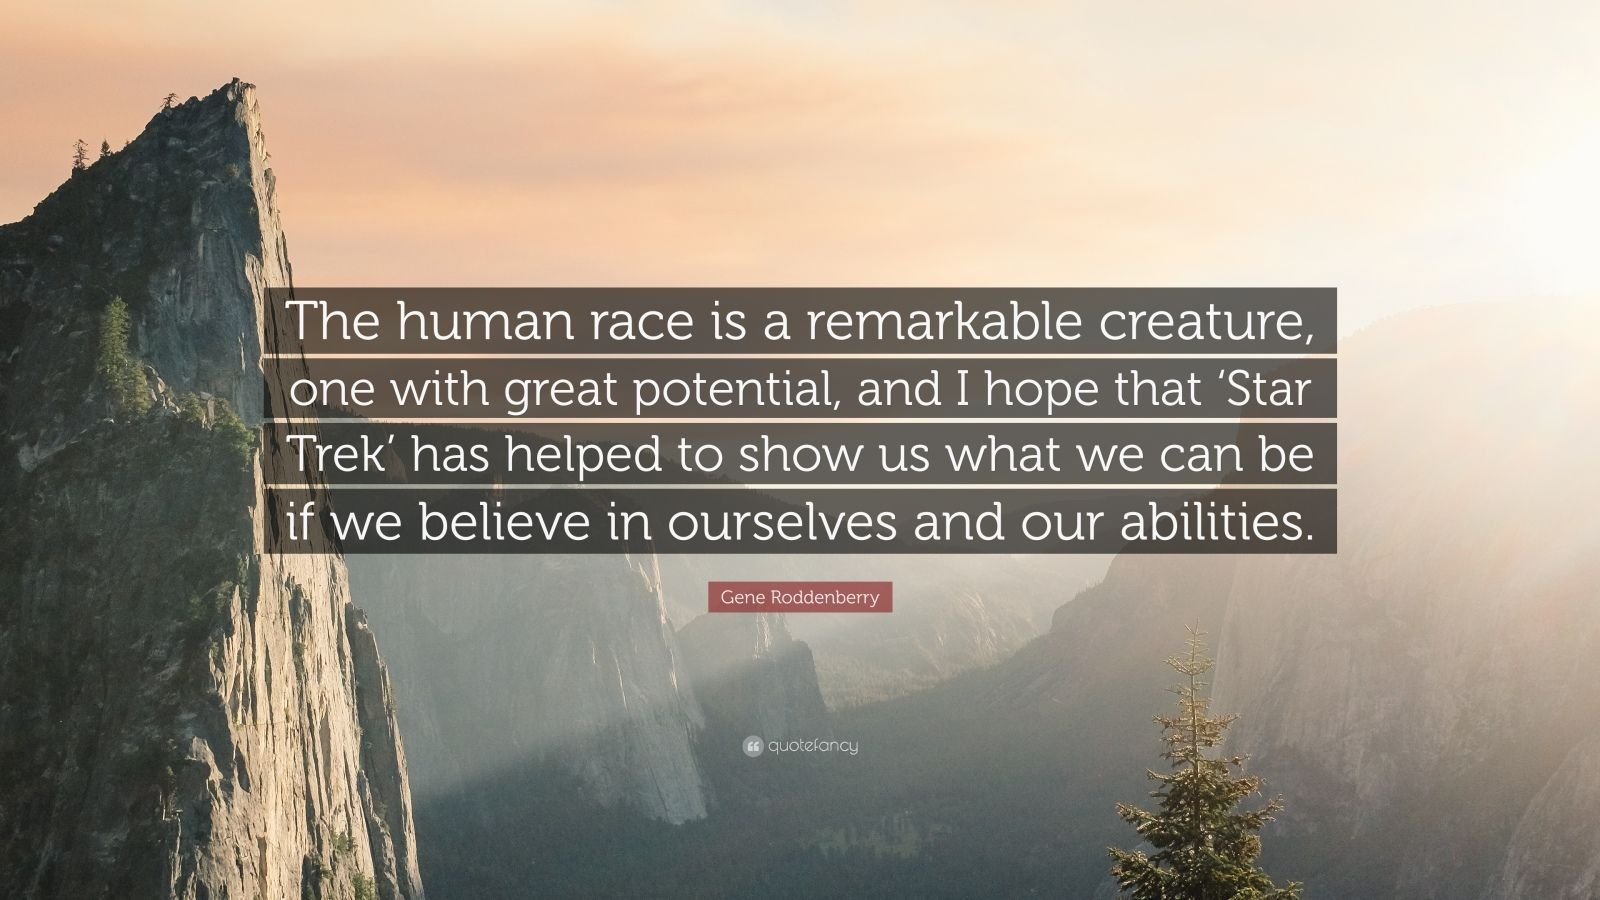 """Gene Roddenberry Quote: """"The human race is a remarkable creature, one with great potential, and I hope that 'Star Trek' has helped to show us what we can be if we believe in ourselves and our abilities."""""""